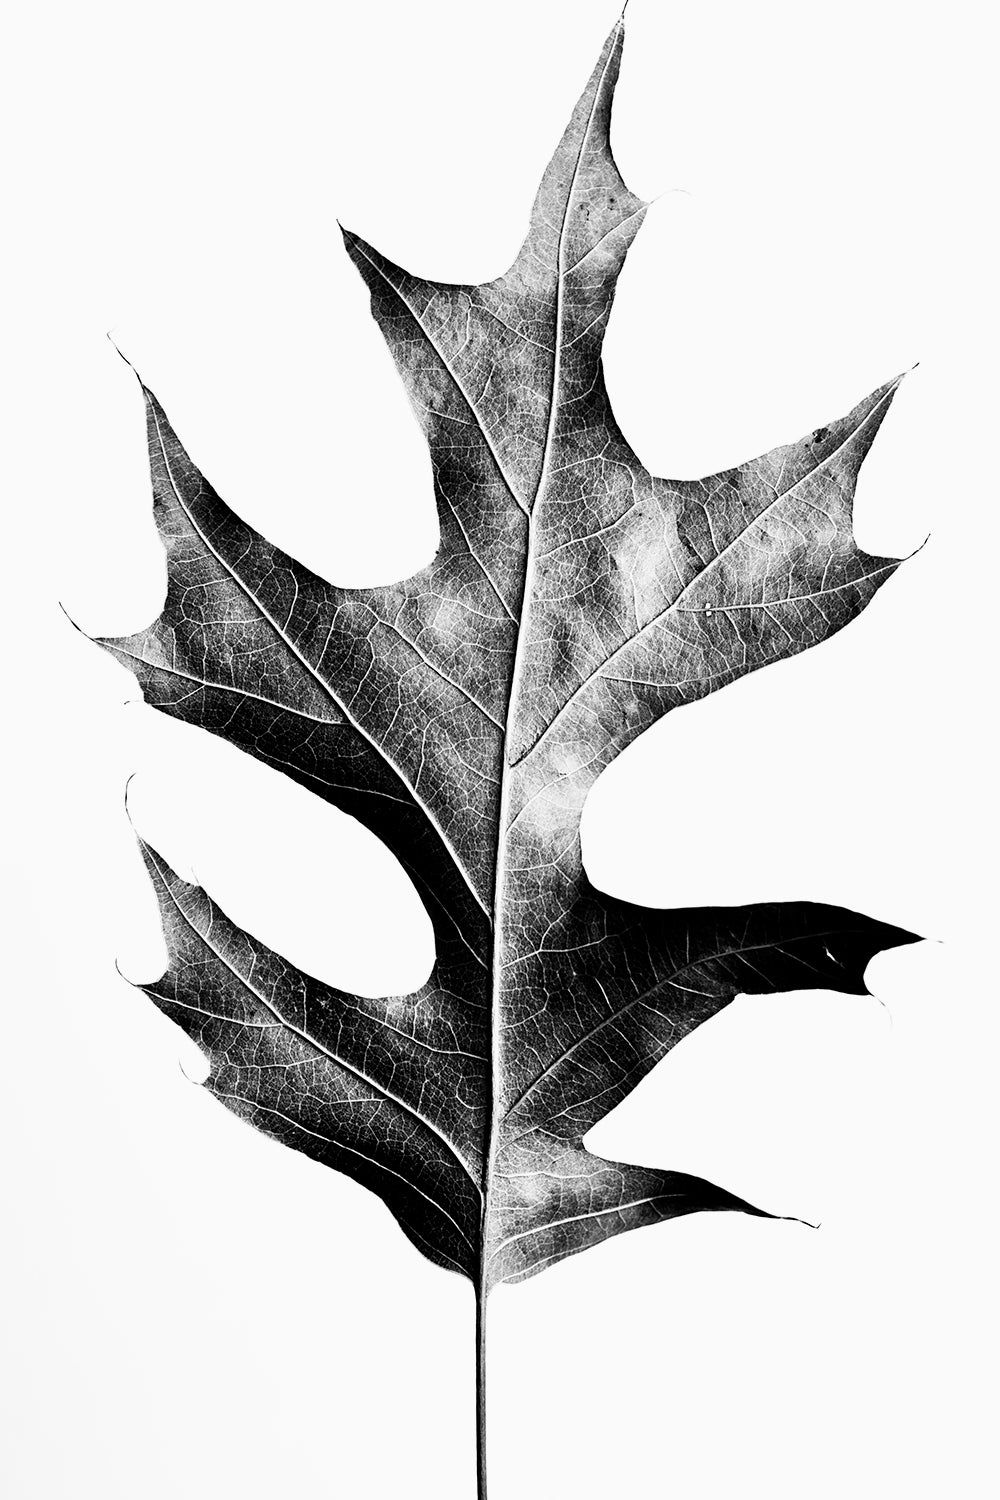 Fallen Oak Leaf - Black and White Photograph by Keith Dotson. Buy a fine art print here.